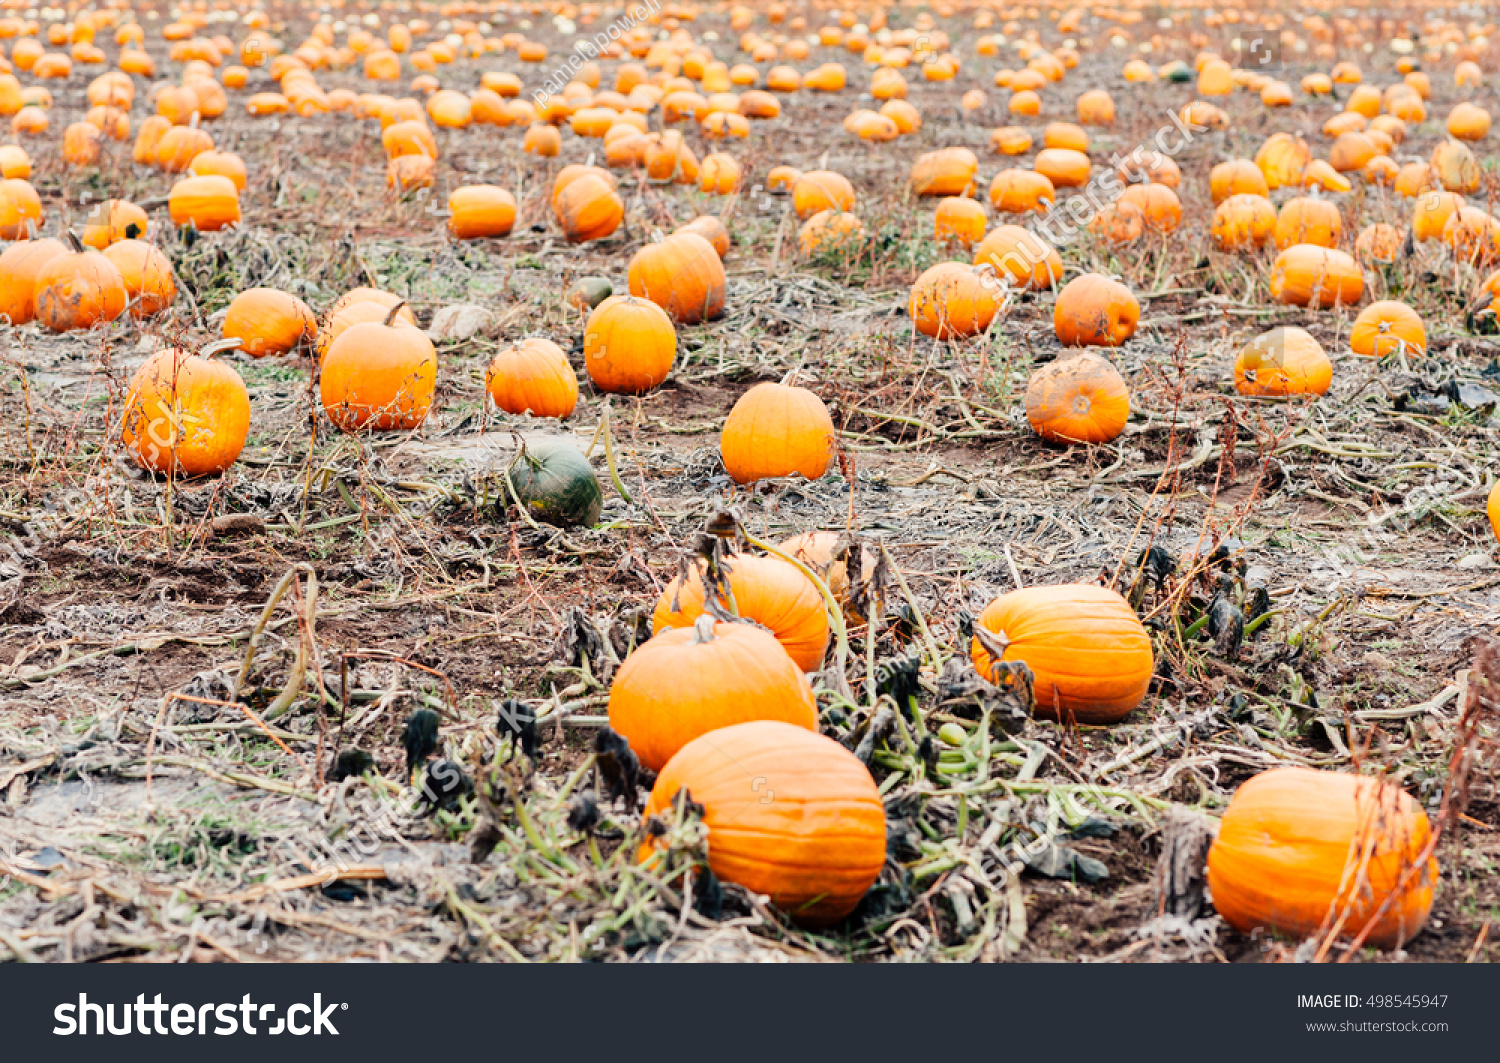 Pumpkins in a pumpkin patch ready for Halloween and Fall harvest | EZ Canvas